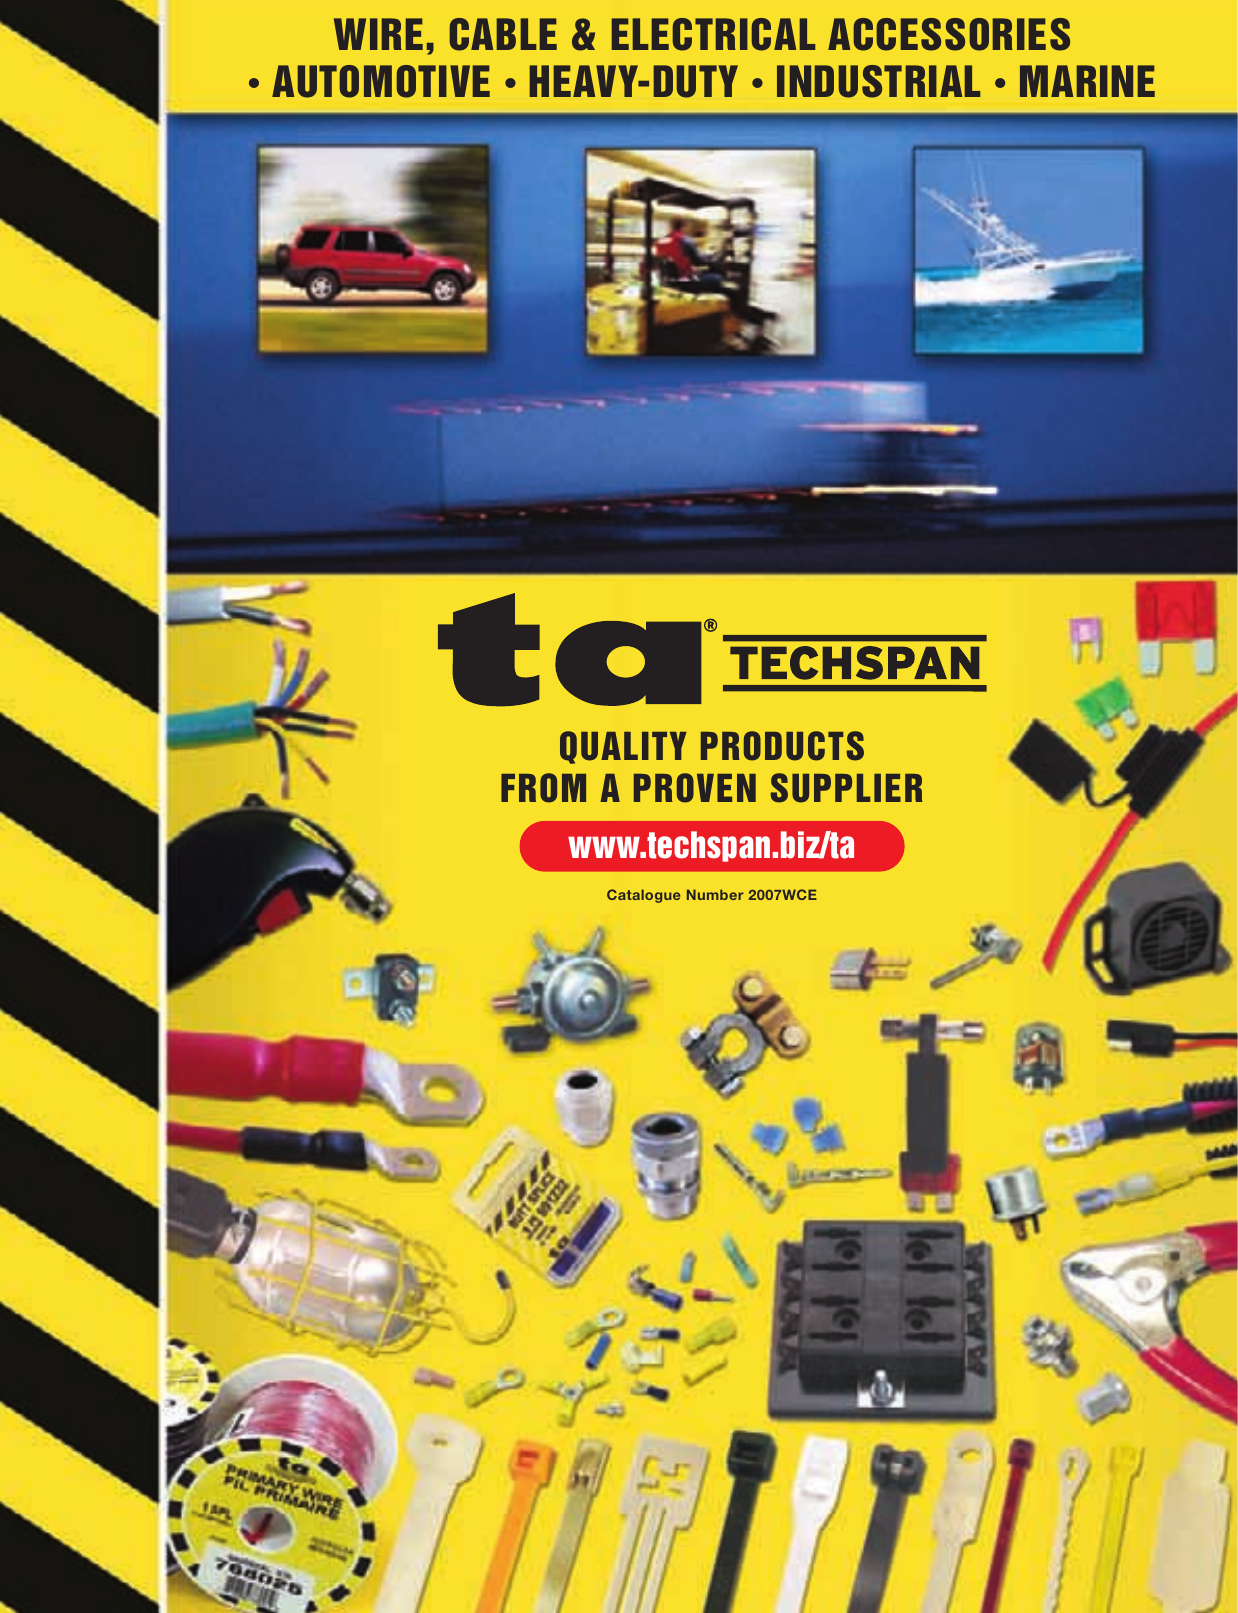 Techspan Auto Catalogue 2007 Pollak Lightduty Toggle Switch Onoff 12 Volt 10 Amp 6quot Wire